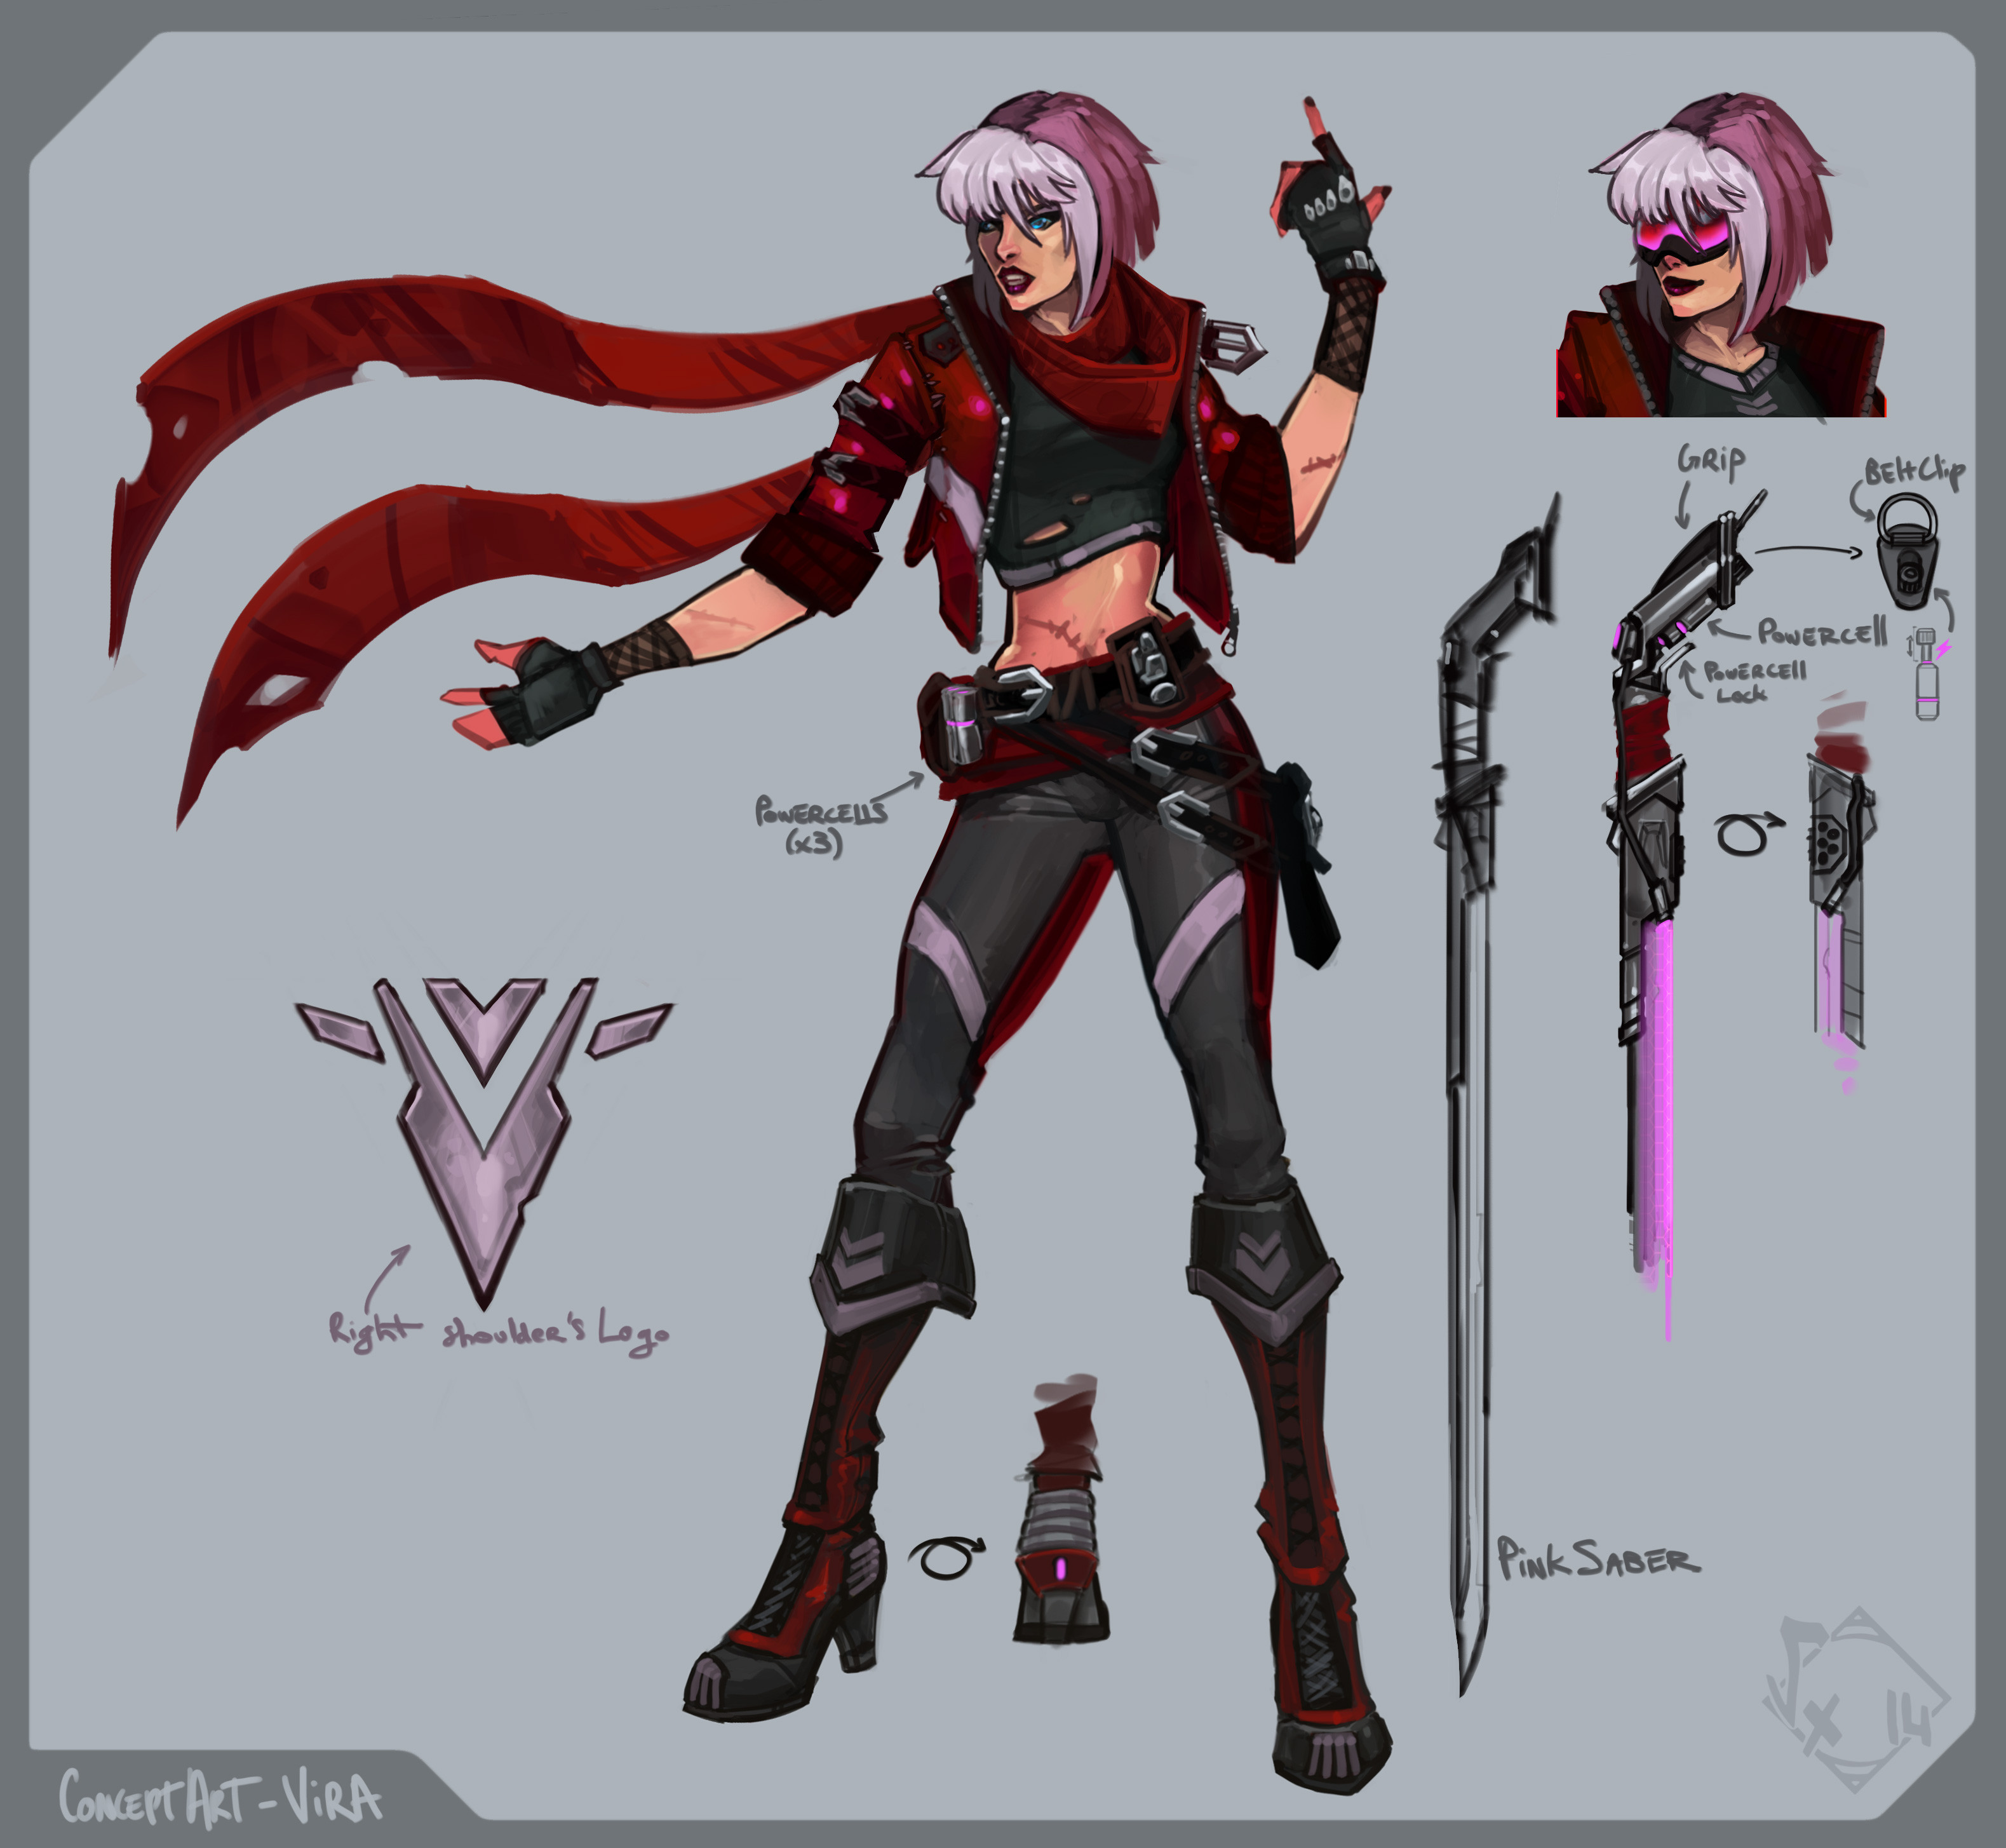 Vira - ConceptArt I made using Mischief (for rough posing/finding the right pieces) and photoshop (PinkSaber (full), colors, tweaks & finishes)